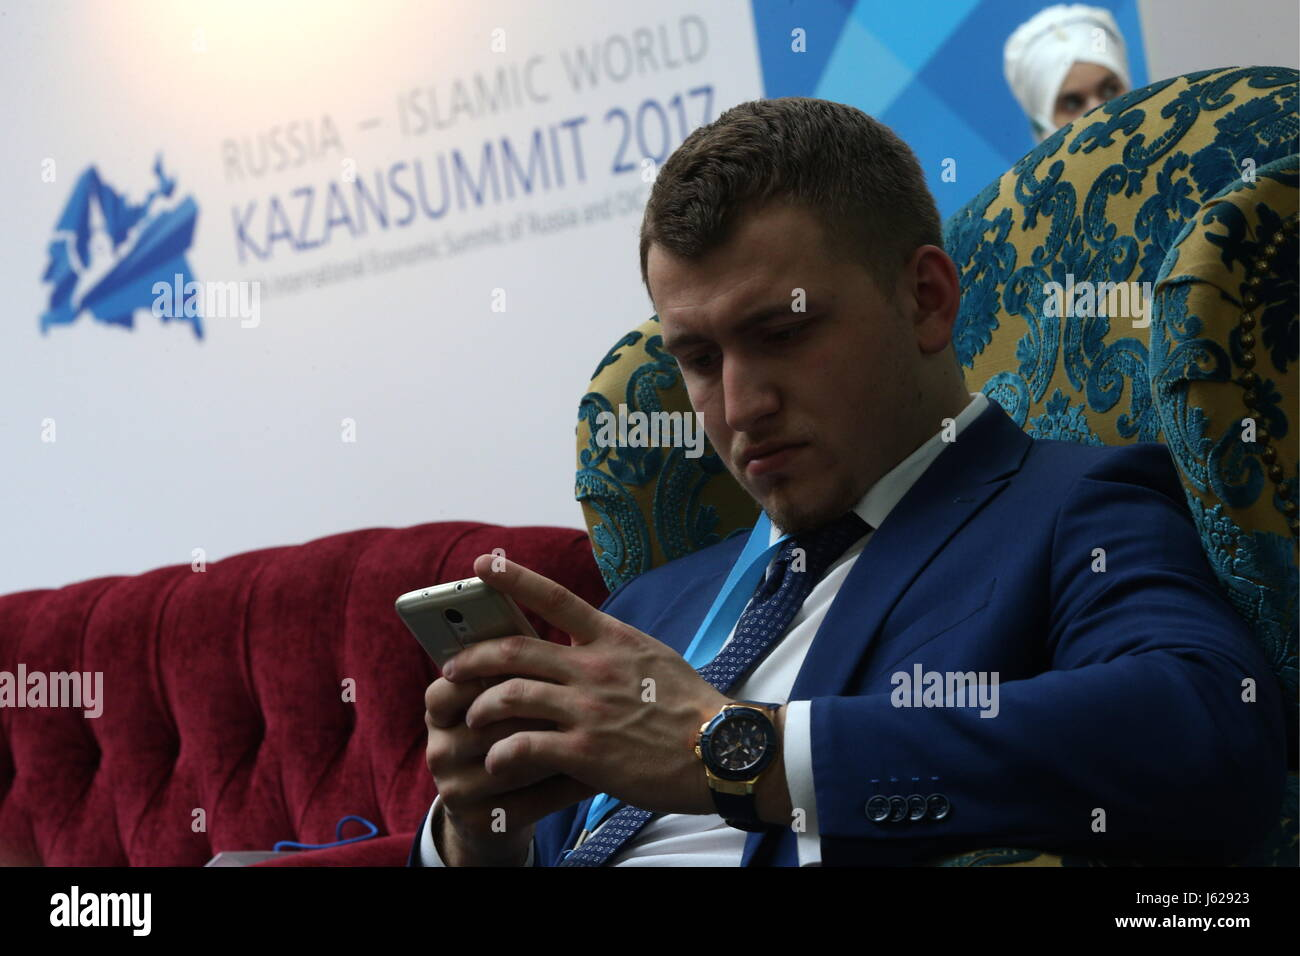 """Kazan, Russia. 18th May, 2017. A participant in the 9th International Economic Summit titled """"Russia — Islamic World: - Stock Image"""